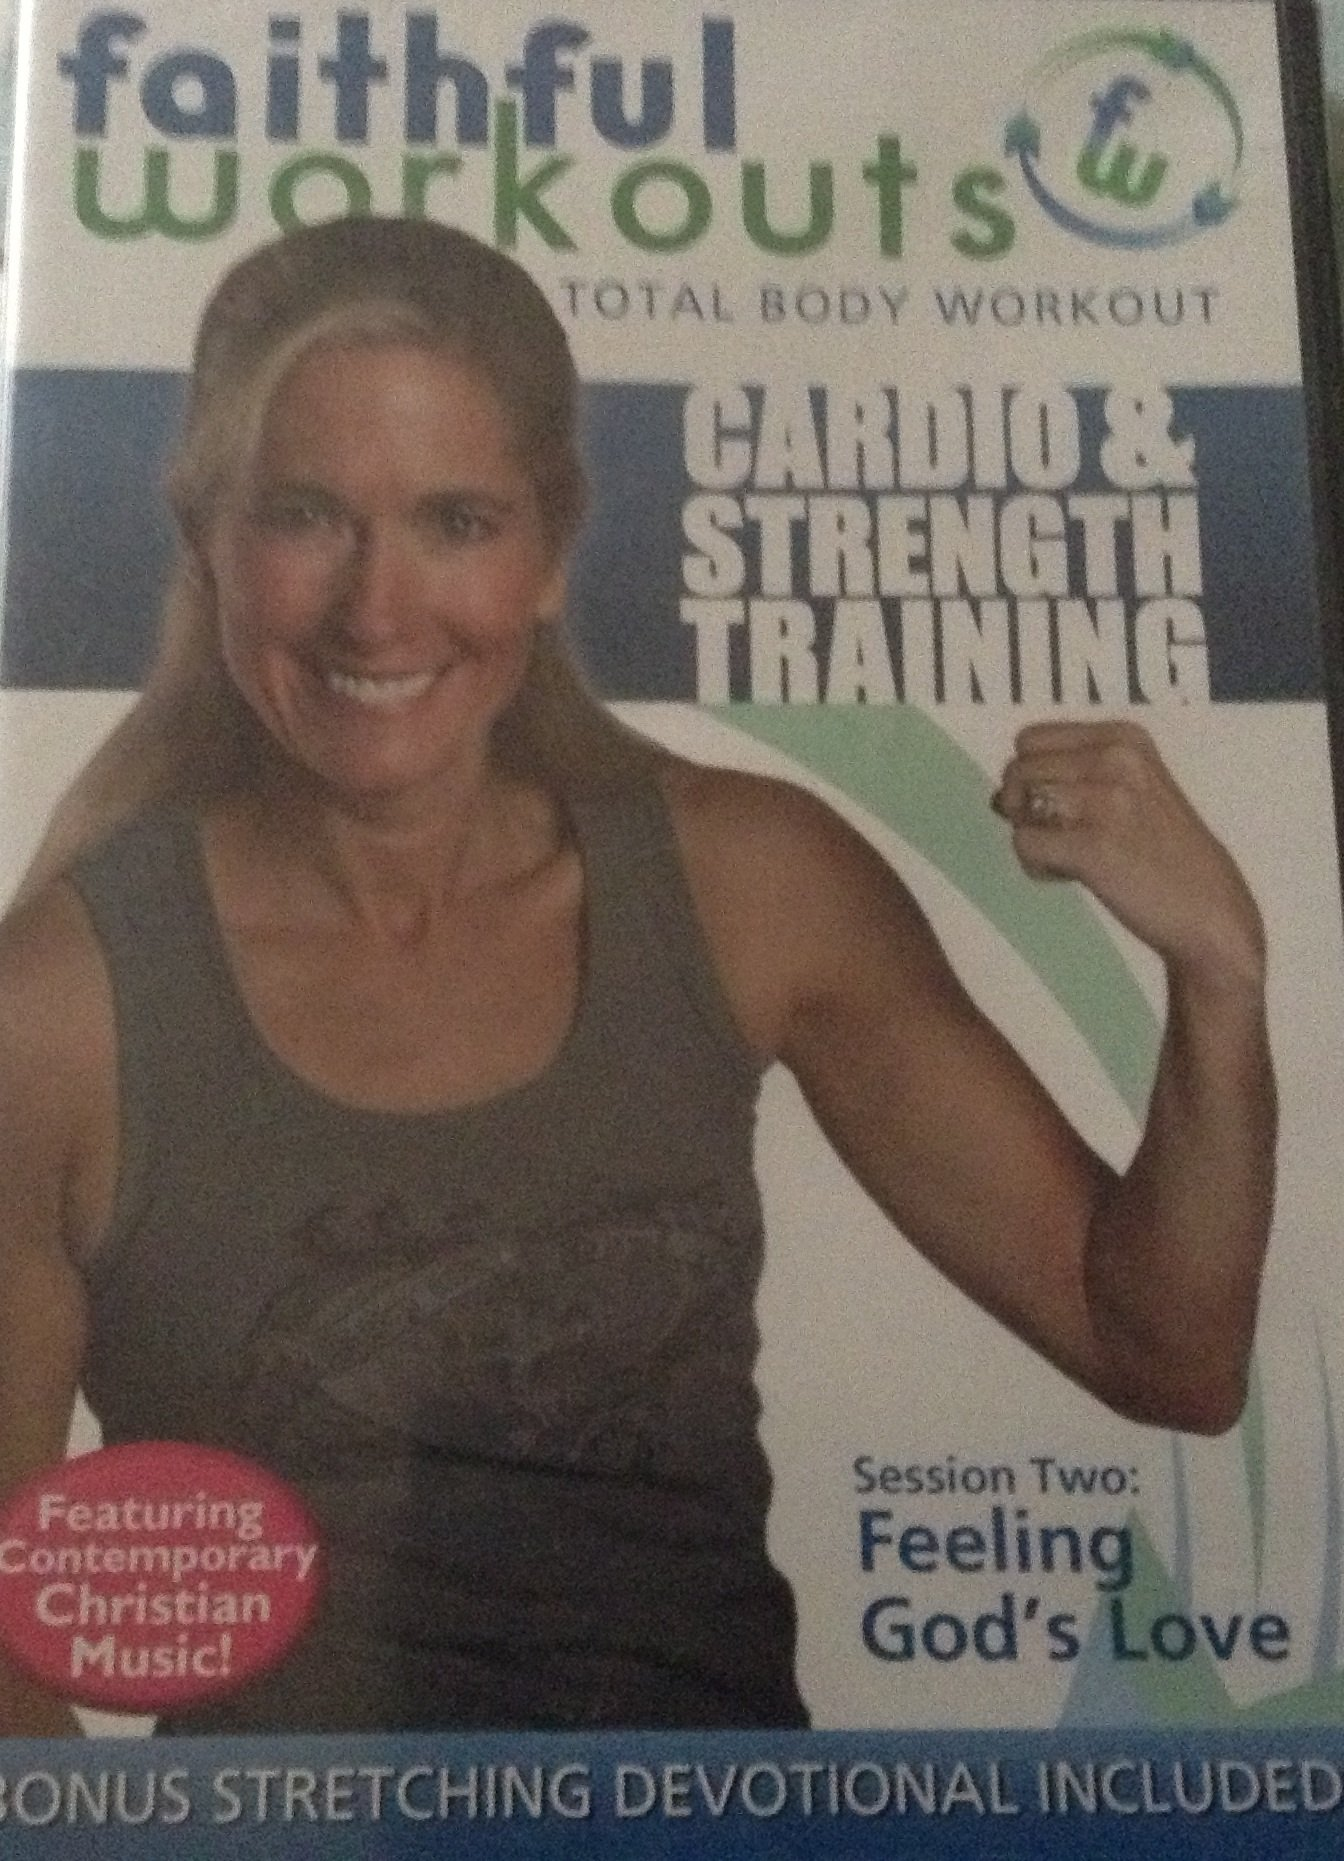 Faithful Workouts Session Two: Feeling God's Love DVD